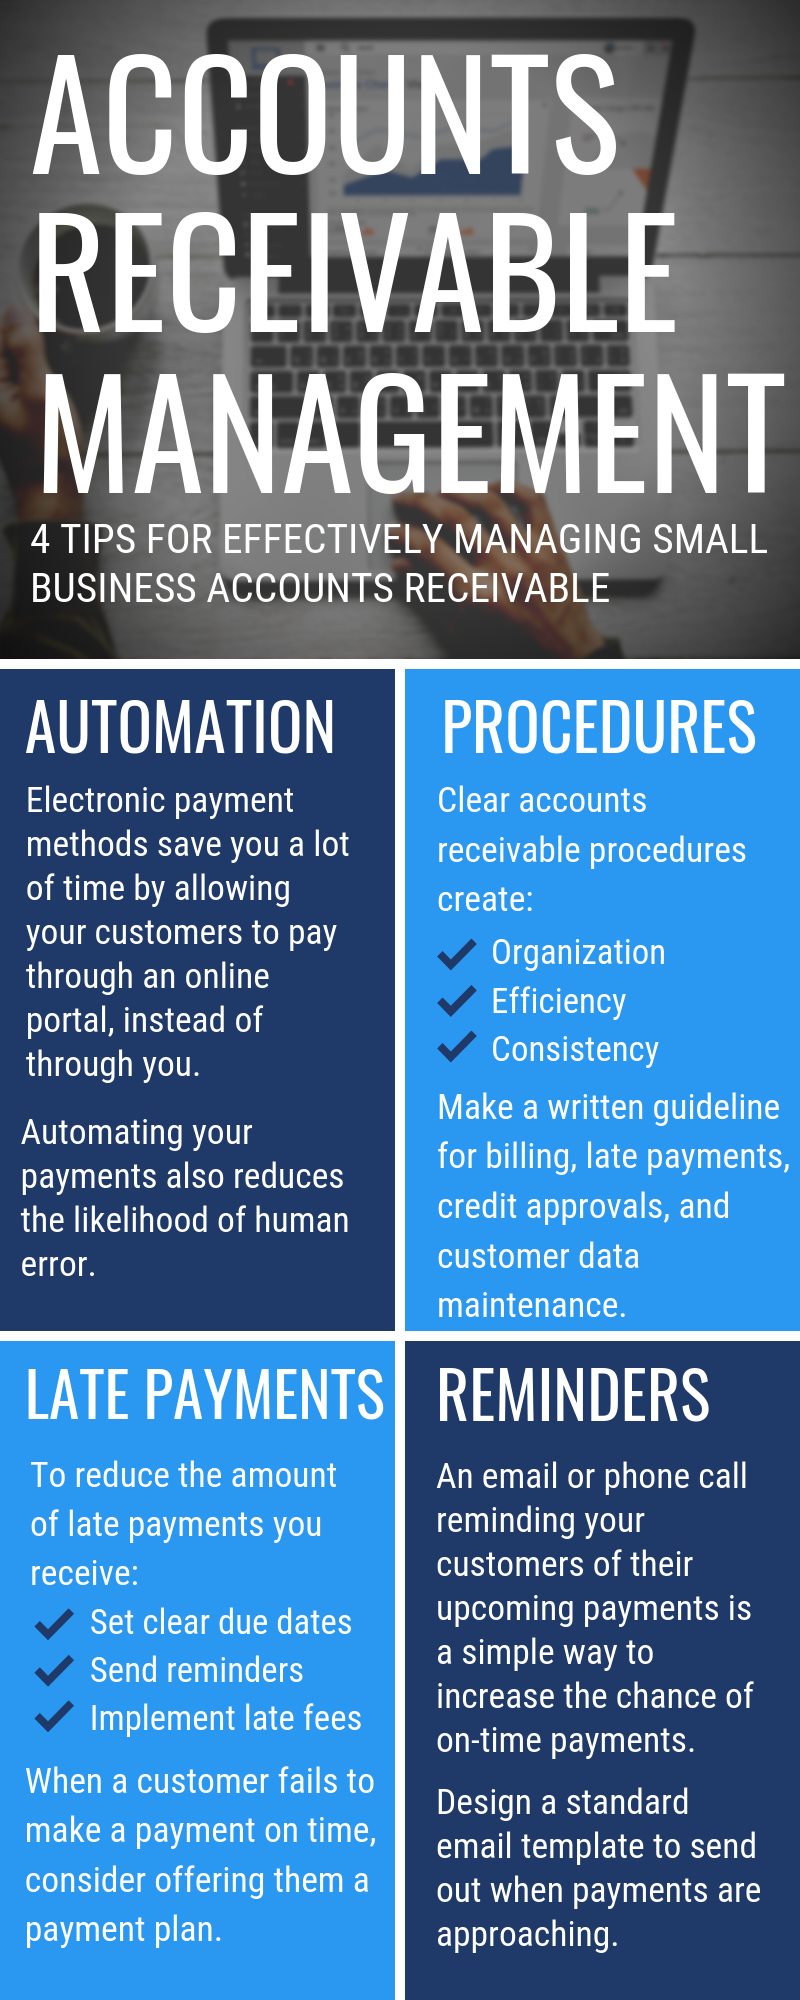 4 Tips for Effectively Managing Small Business Accounts Receivable